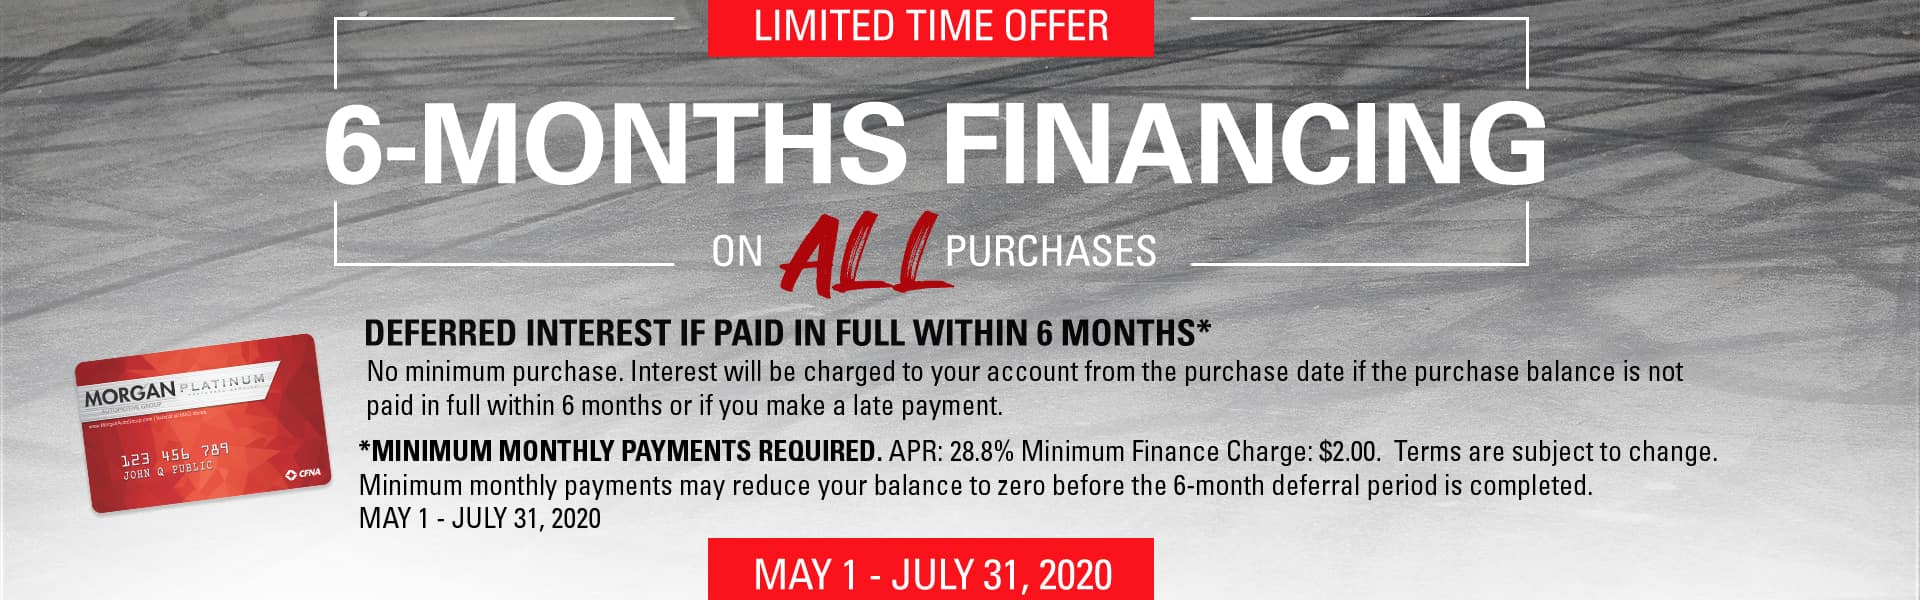 Limited Time Offer | 6-Months Financing on All Purchases